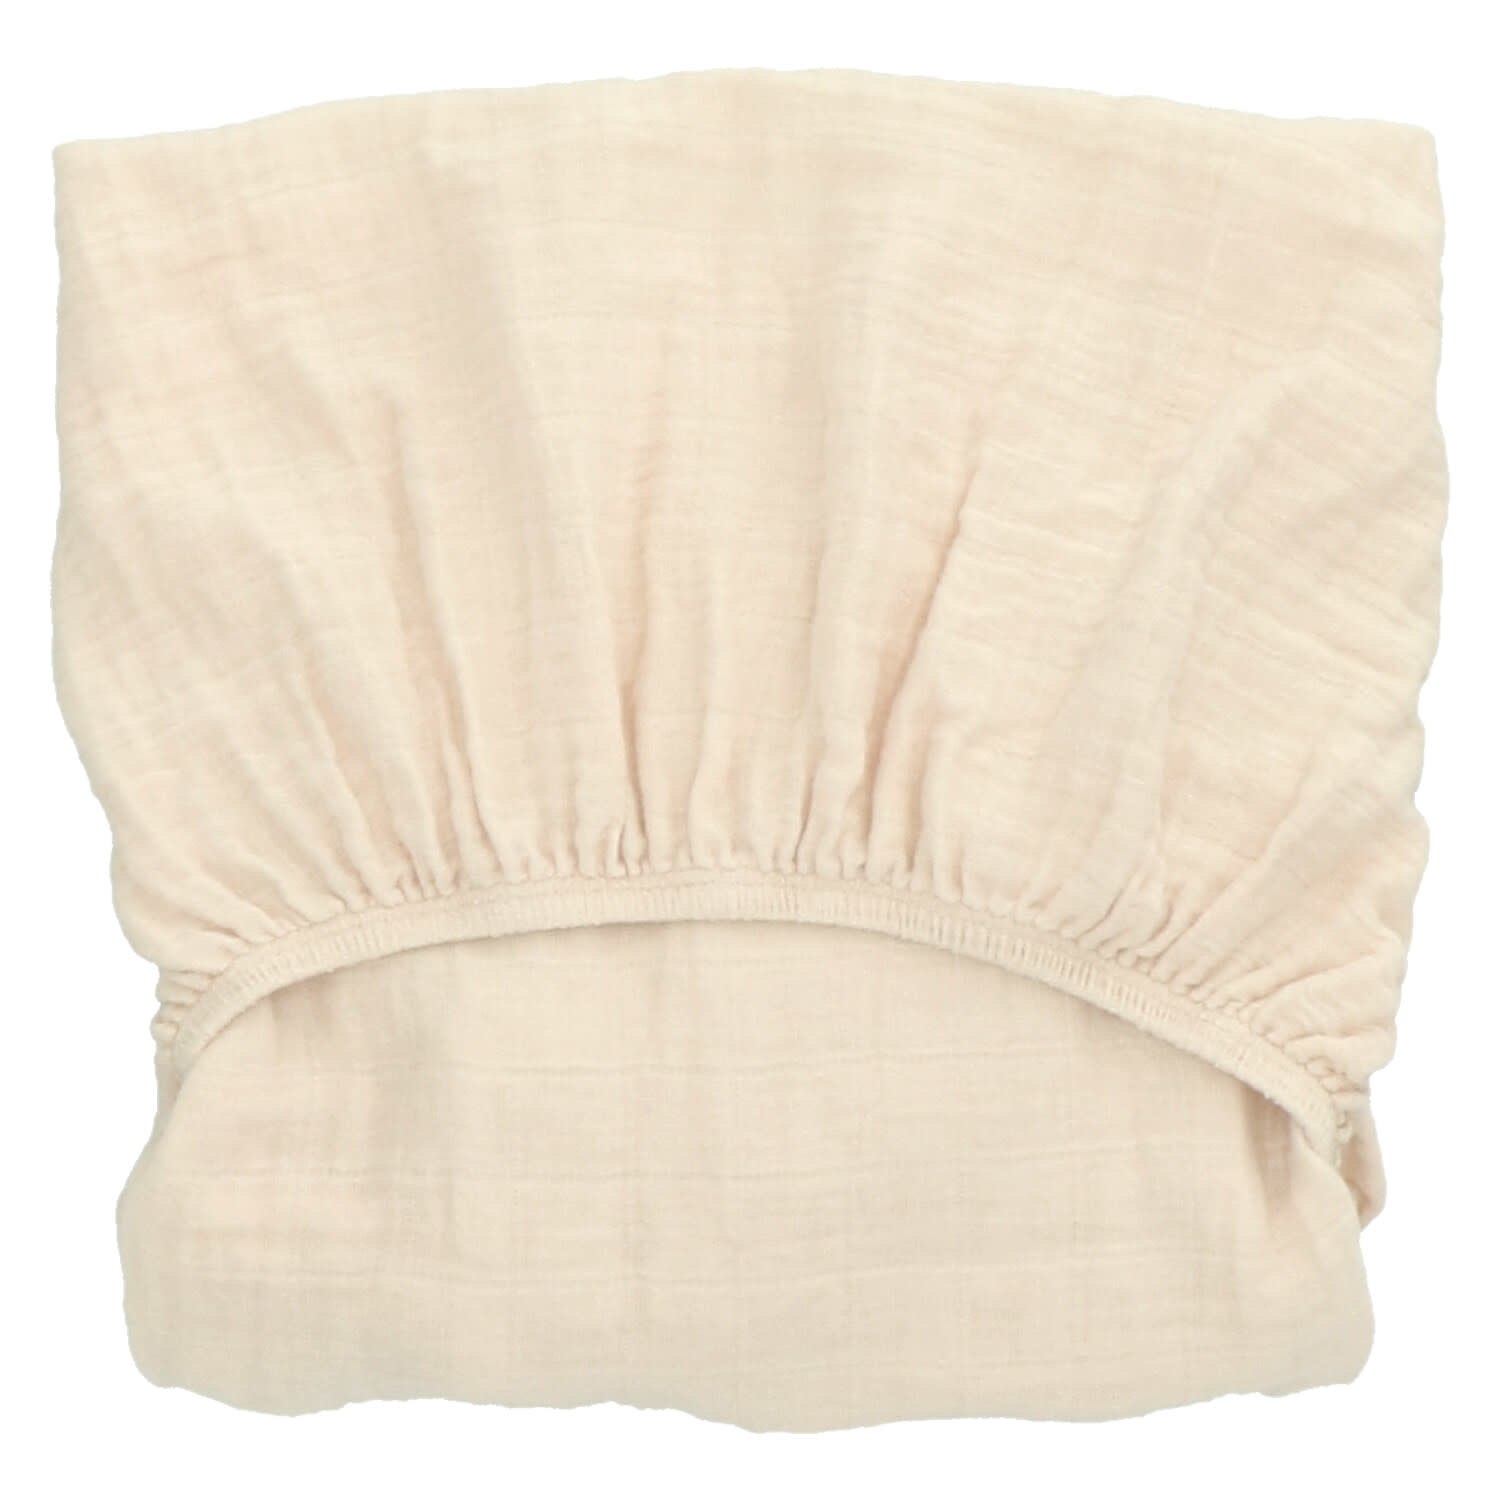 Franklin fitted sheet blossom-1